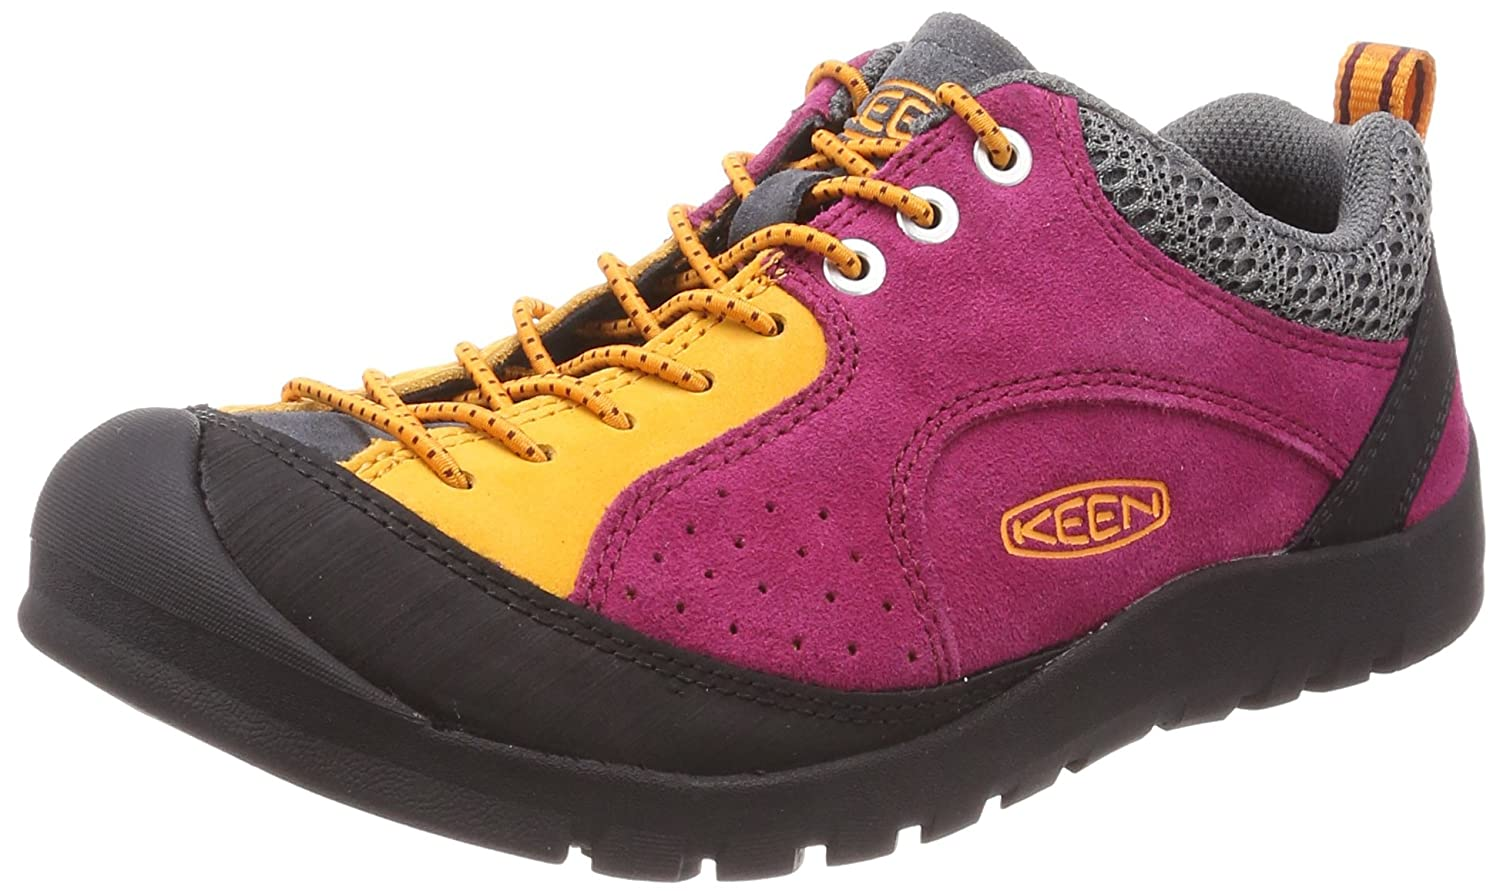 KEEN Women's Jasper Rocks SP-W Hiking Shoe B071K3G6P5 7.5 B(M) US|Red Plum/Apricot